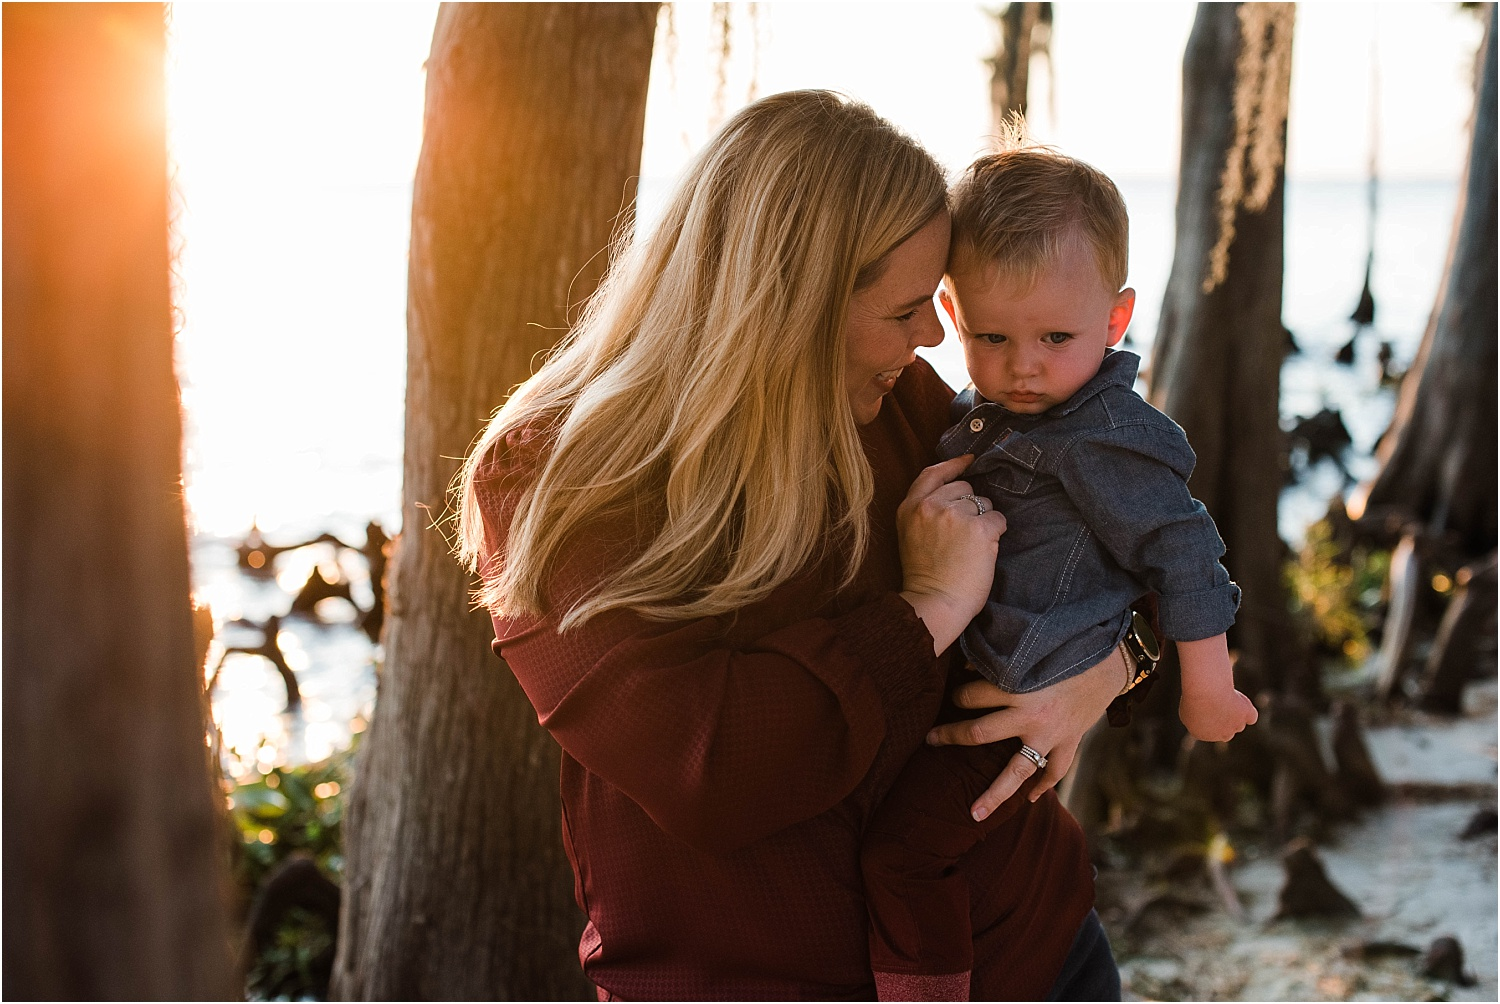 Smalley Family Fall 2019-Fountainbleau-State-Park-Family-Photos_Gabby Chapin Photography_0102_BLOG.jpg